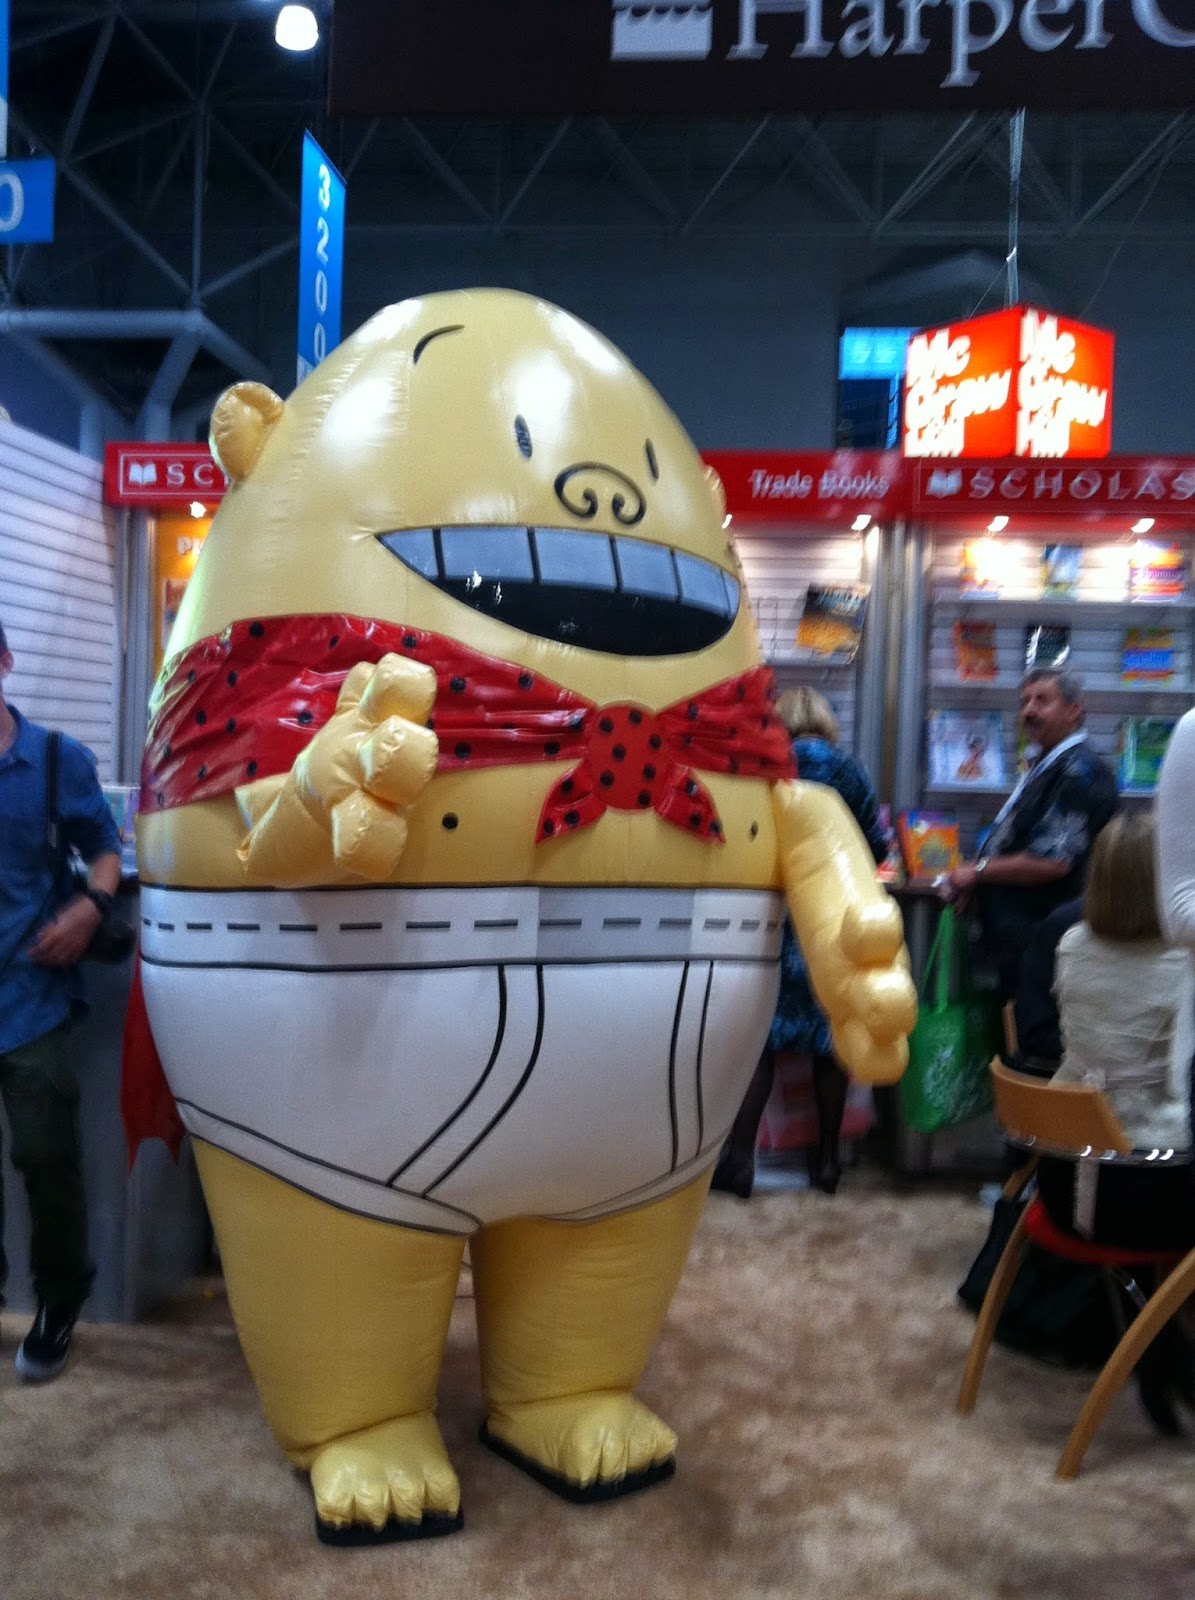 Captain Underpants at Book Expo America 2012